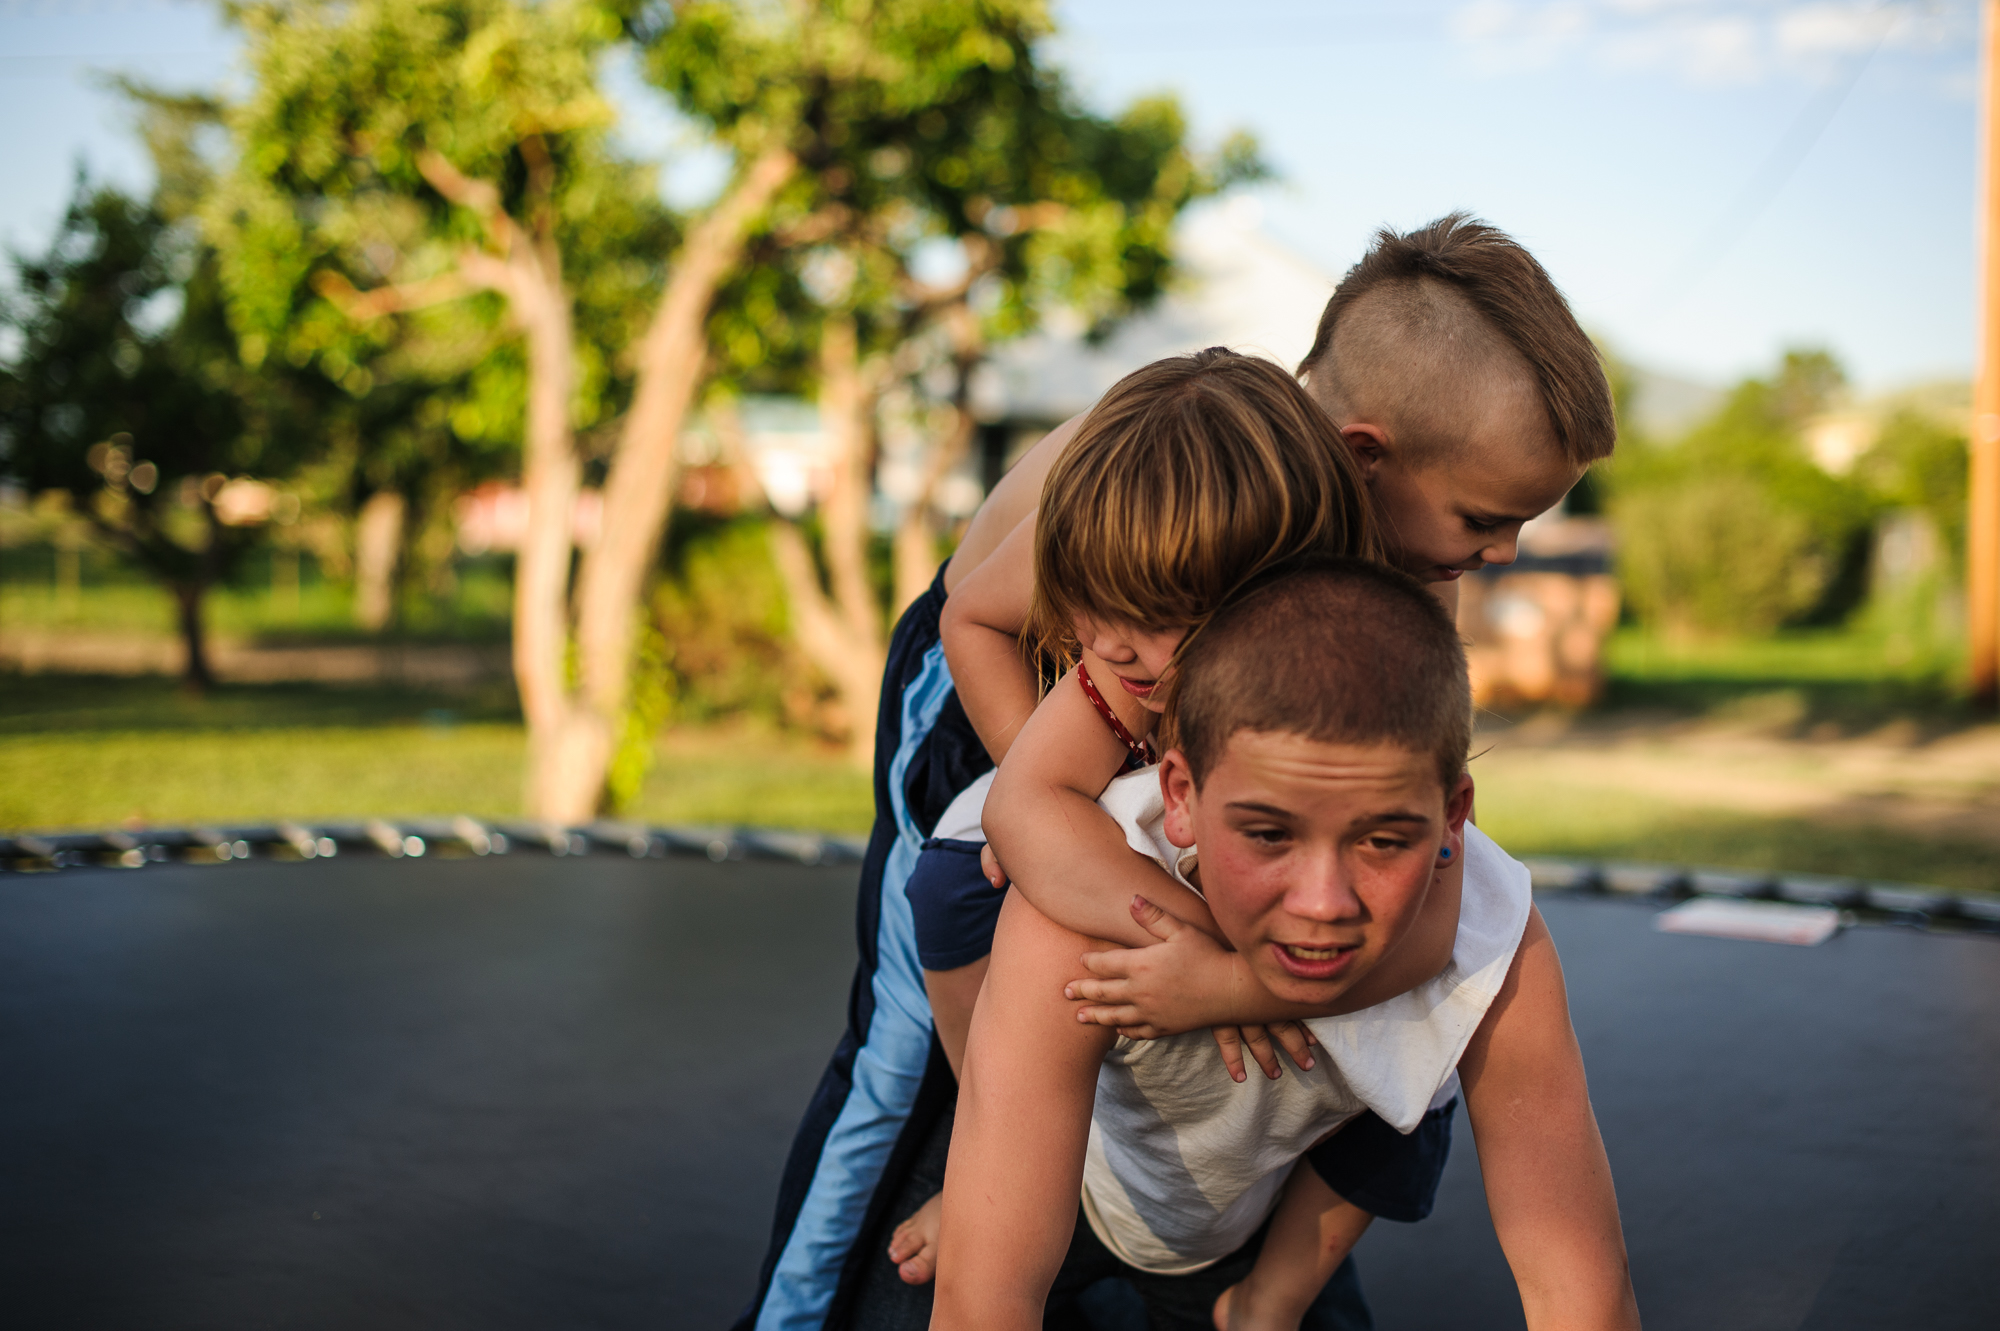 Vinny, age 13, carries his sister and brother on his back on a trampoline at his aunt's home during an organized family visit, 2012.